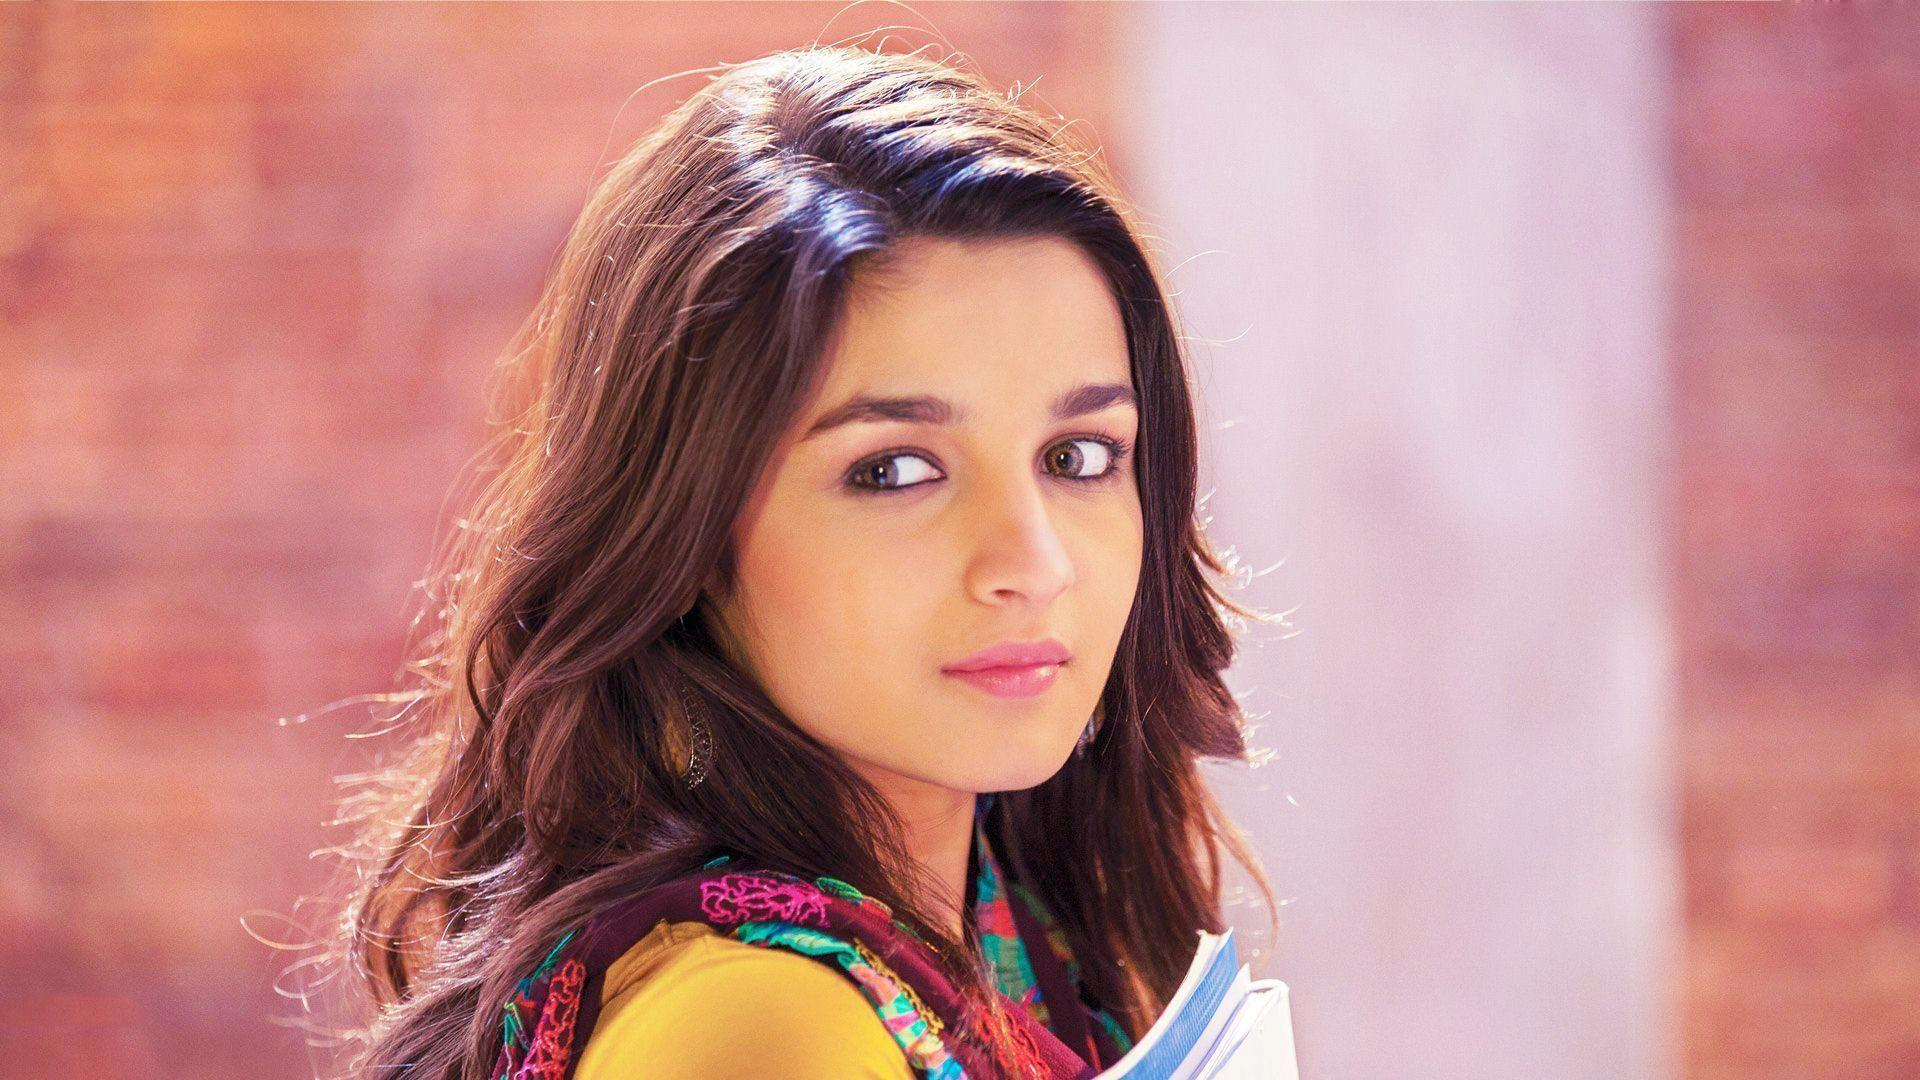 Best HD Backgrounds of Alia Bhatt HD, Full HD 1080p Desktop